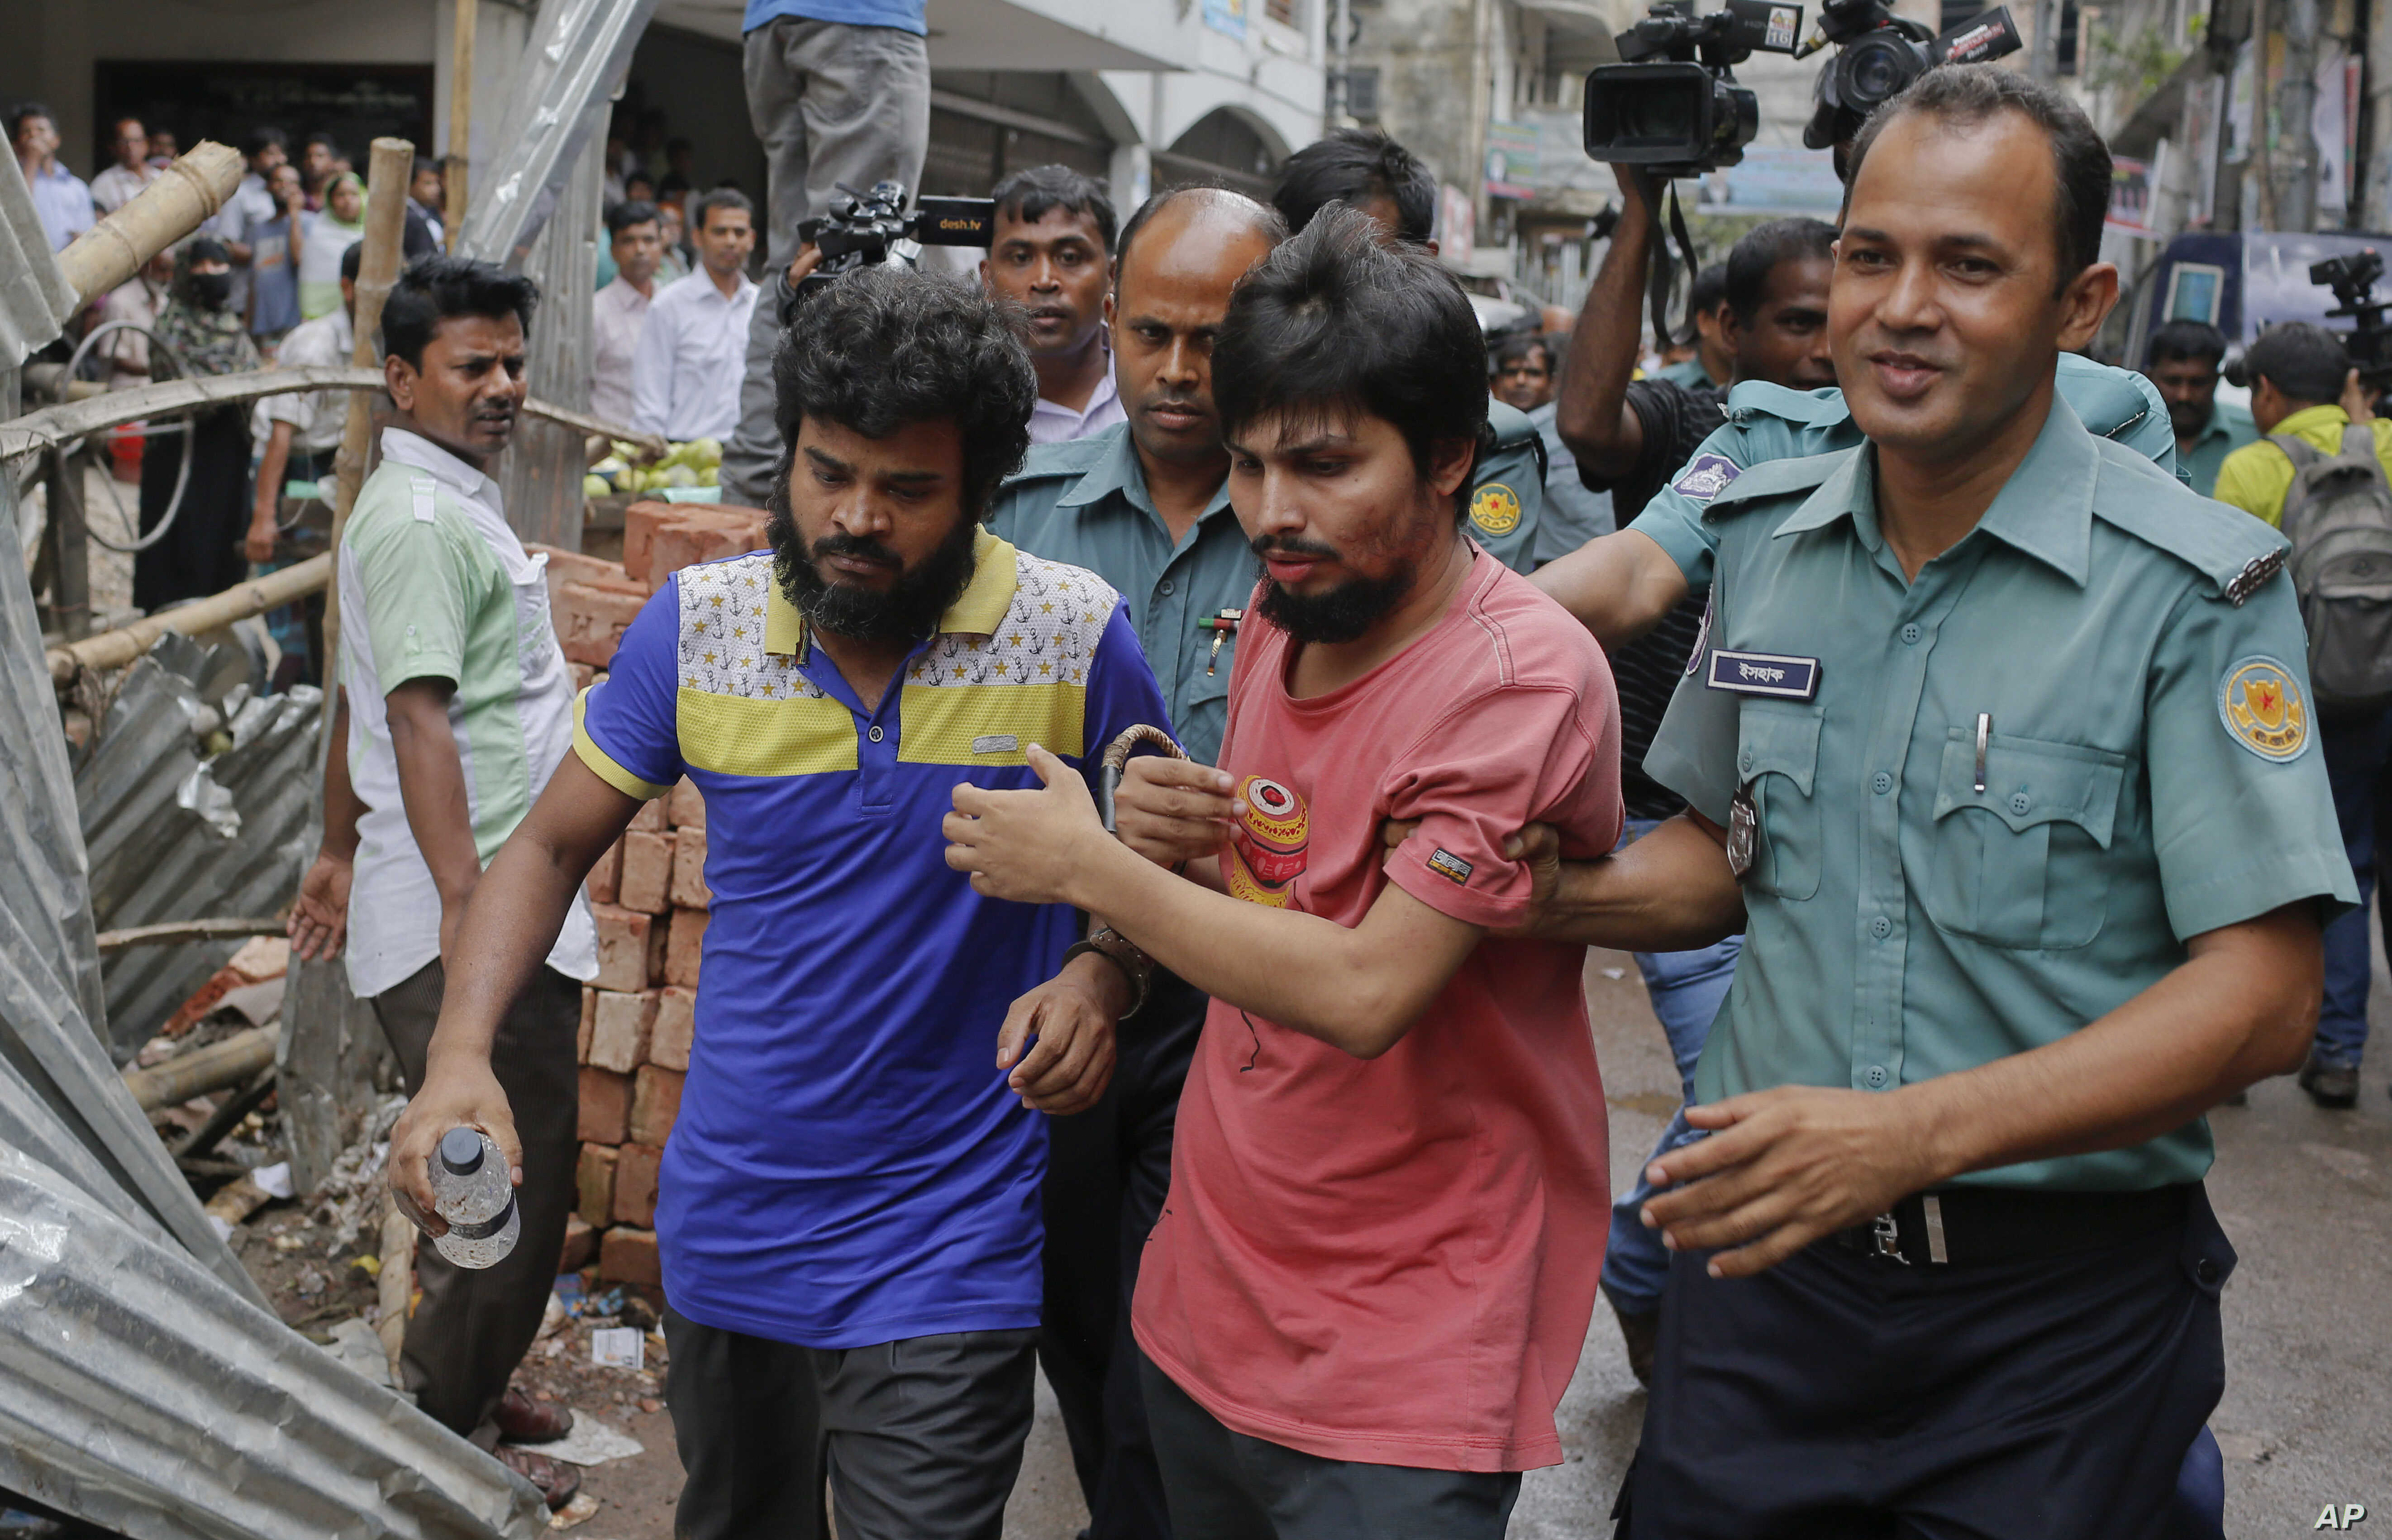 Suspected members of the banned Islamic militant outfit Ansarullah Bangla Team, Sadek Ali (second right) and Aminul Mollick (front left) are escorted by policemen along with another suspect from a court in Dhaka, Bangladesh, Aug. 19, 2015.